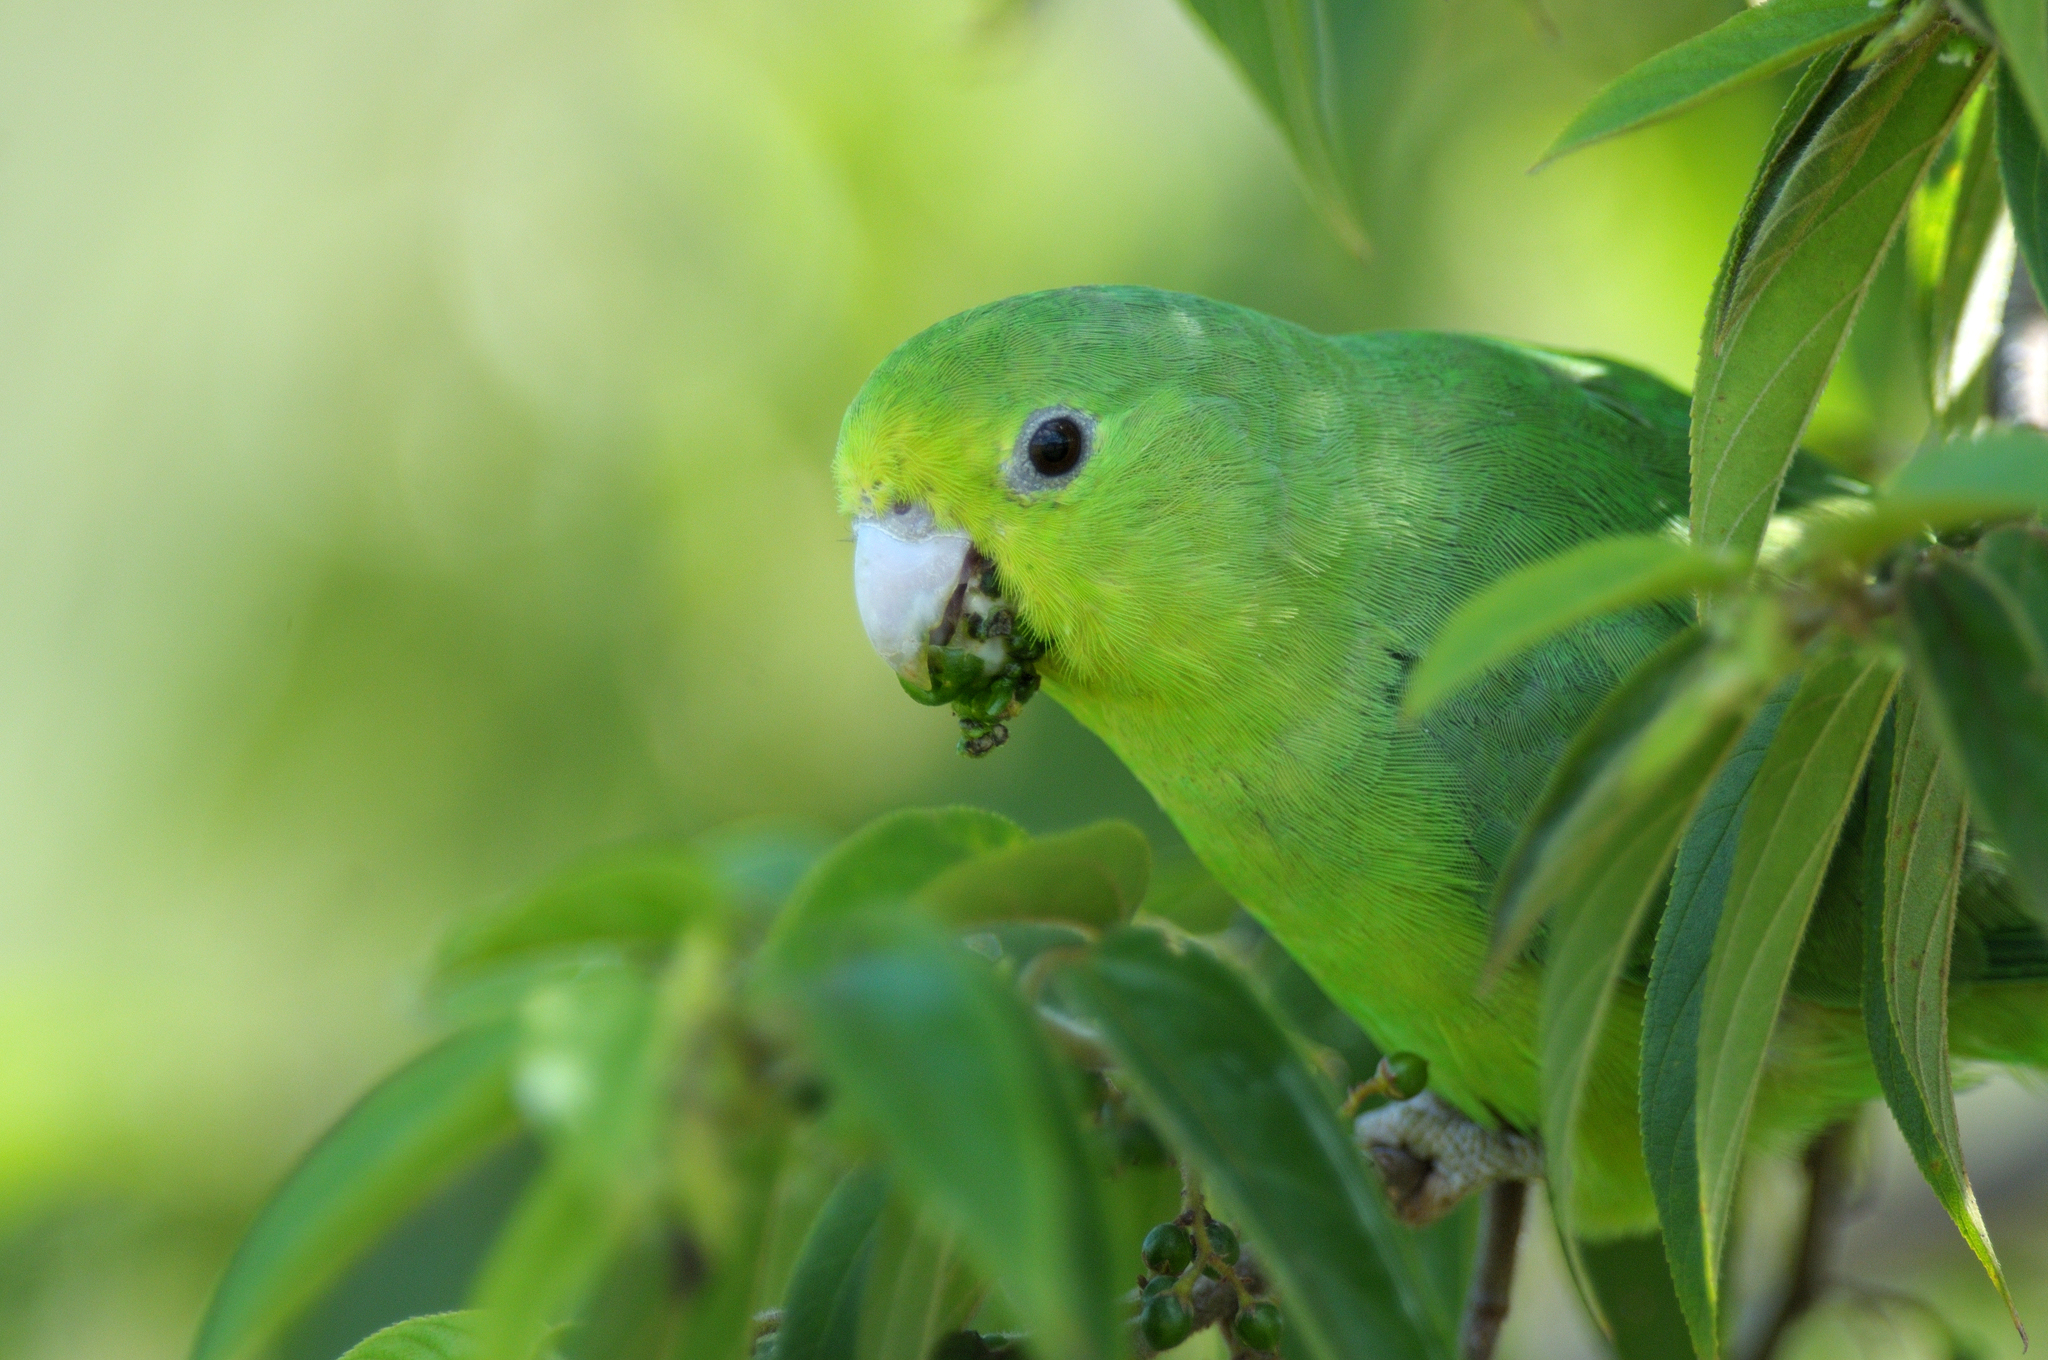 Blue-winged_Parrotlet_-_Iguazú_Falls_-_